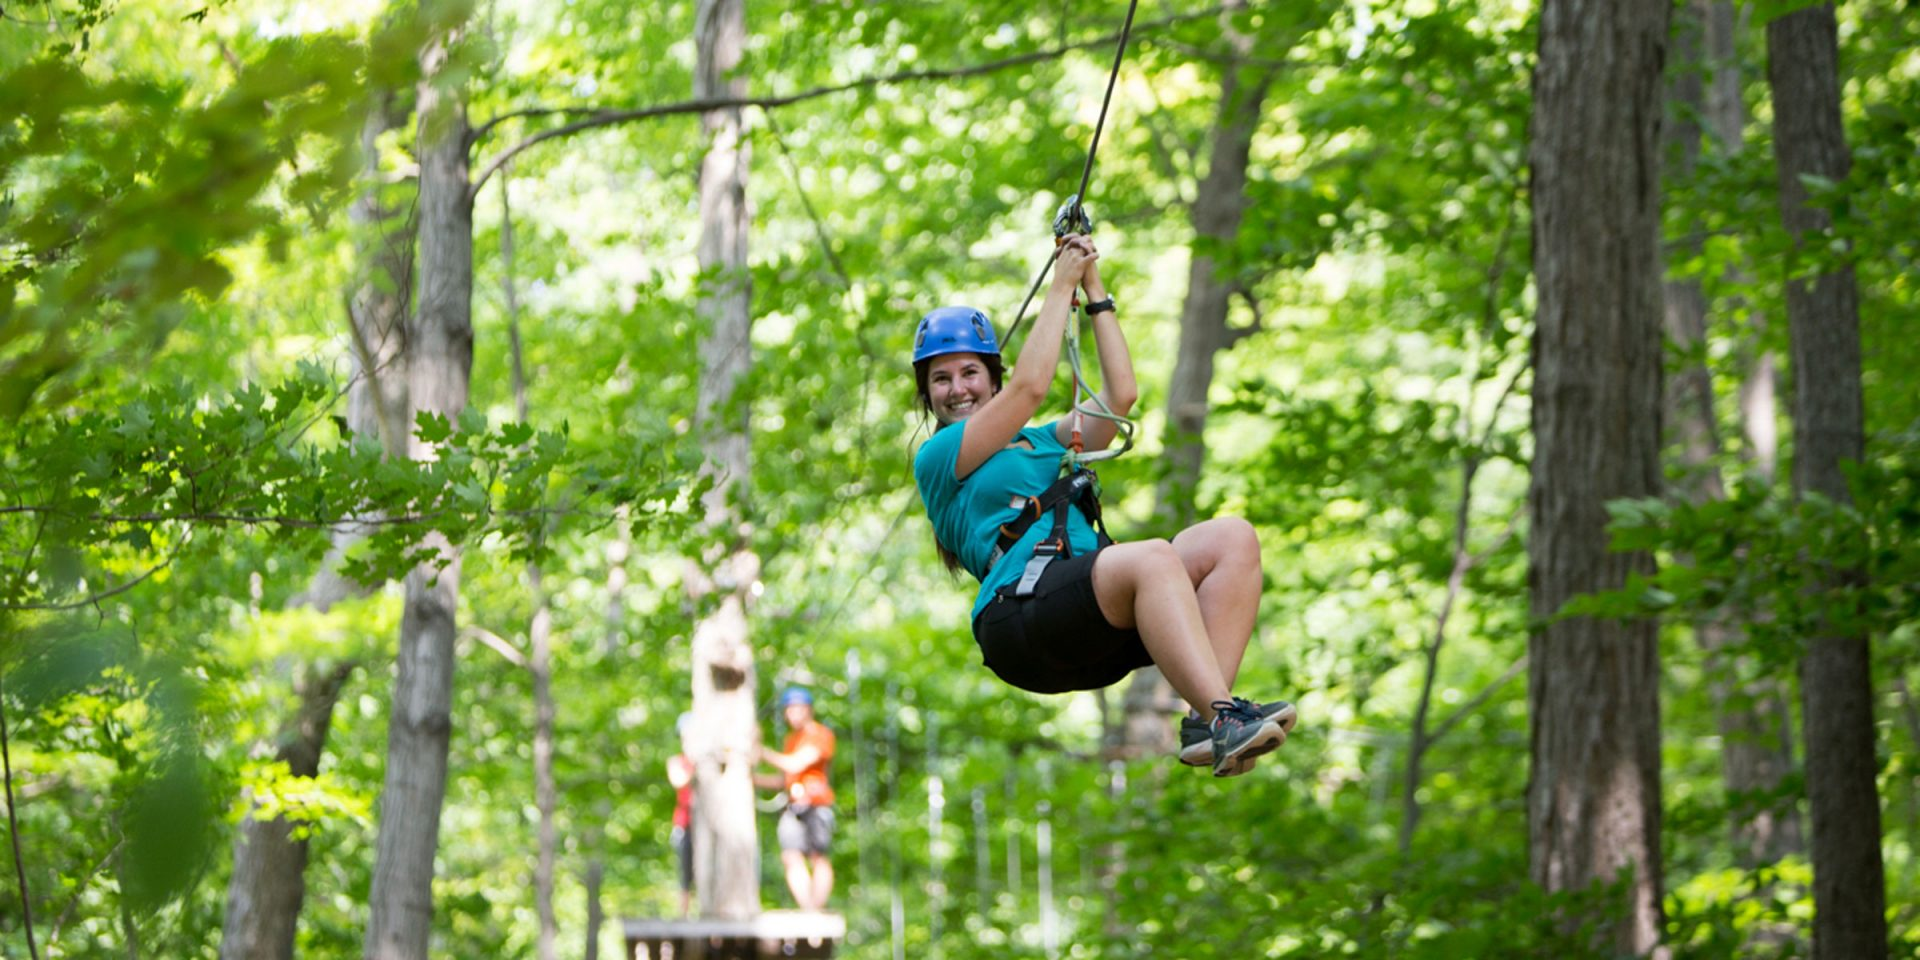 Take a Zip Lining and Aerial Adventure in Muskoka